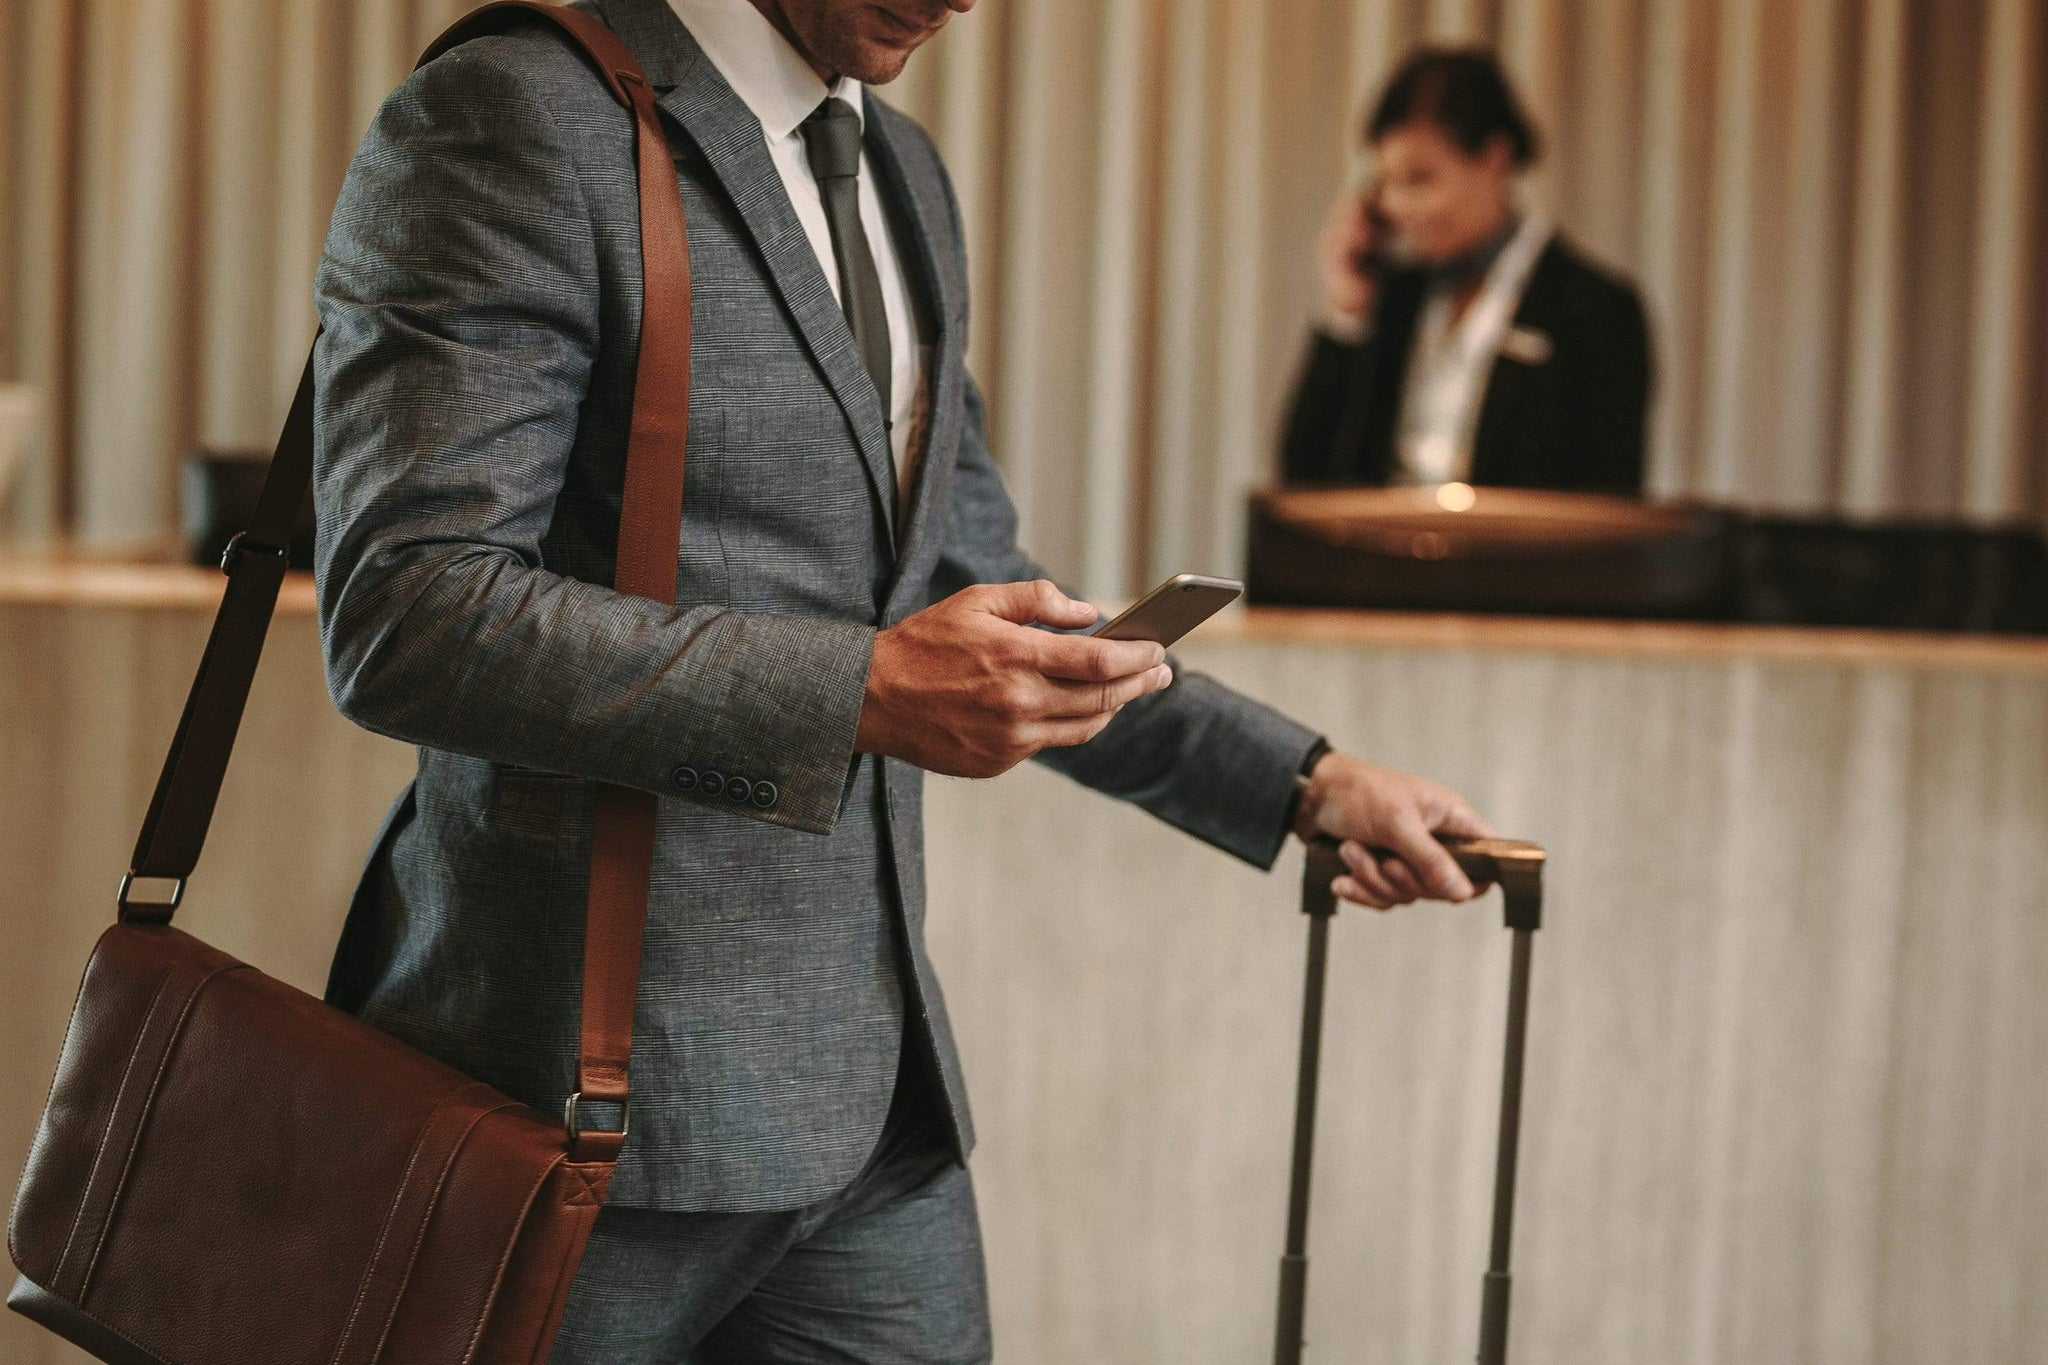 5 Reasons Your Employee Uniforms Matter To Hotel Guests